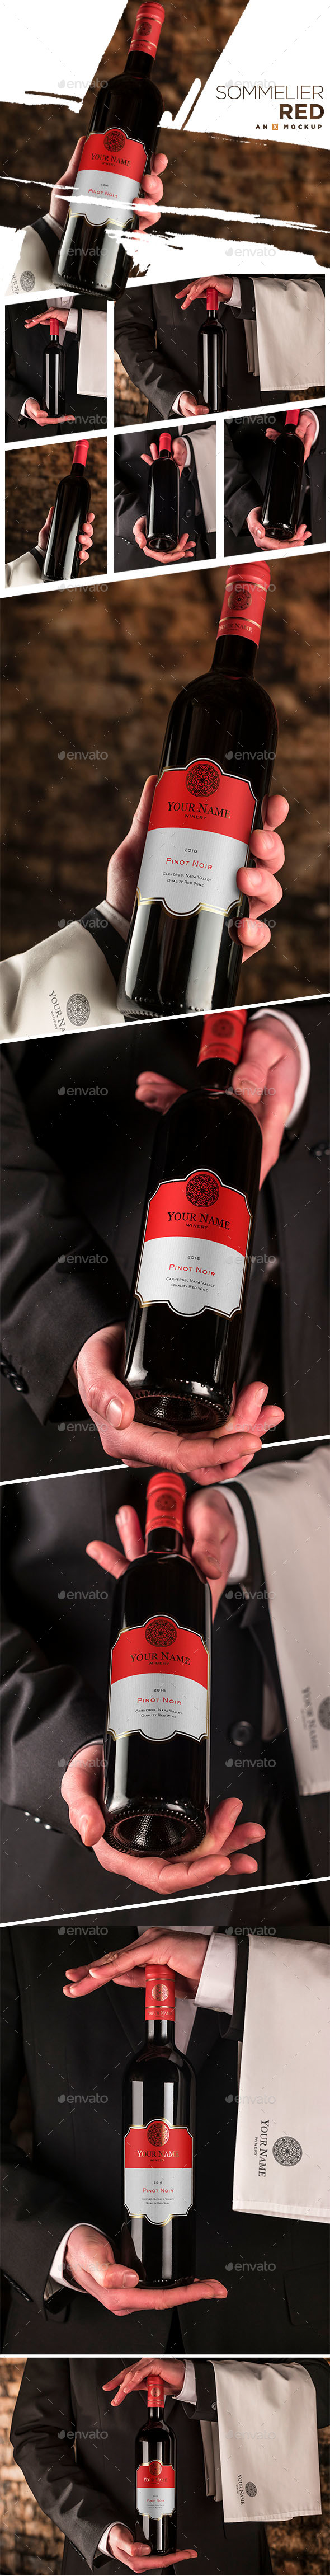 Sommelier Wine Mockup - Bordeaux Red - Food and Drink Packaging